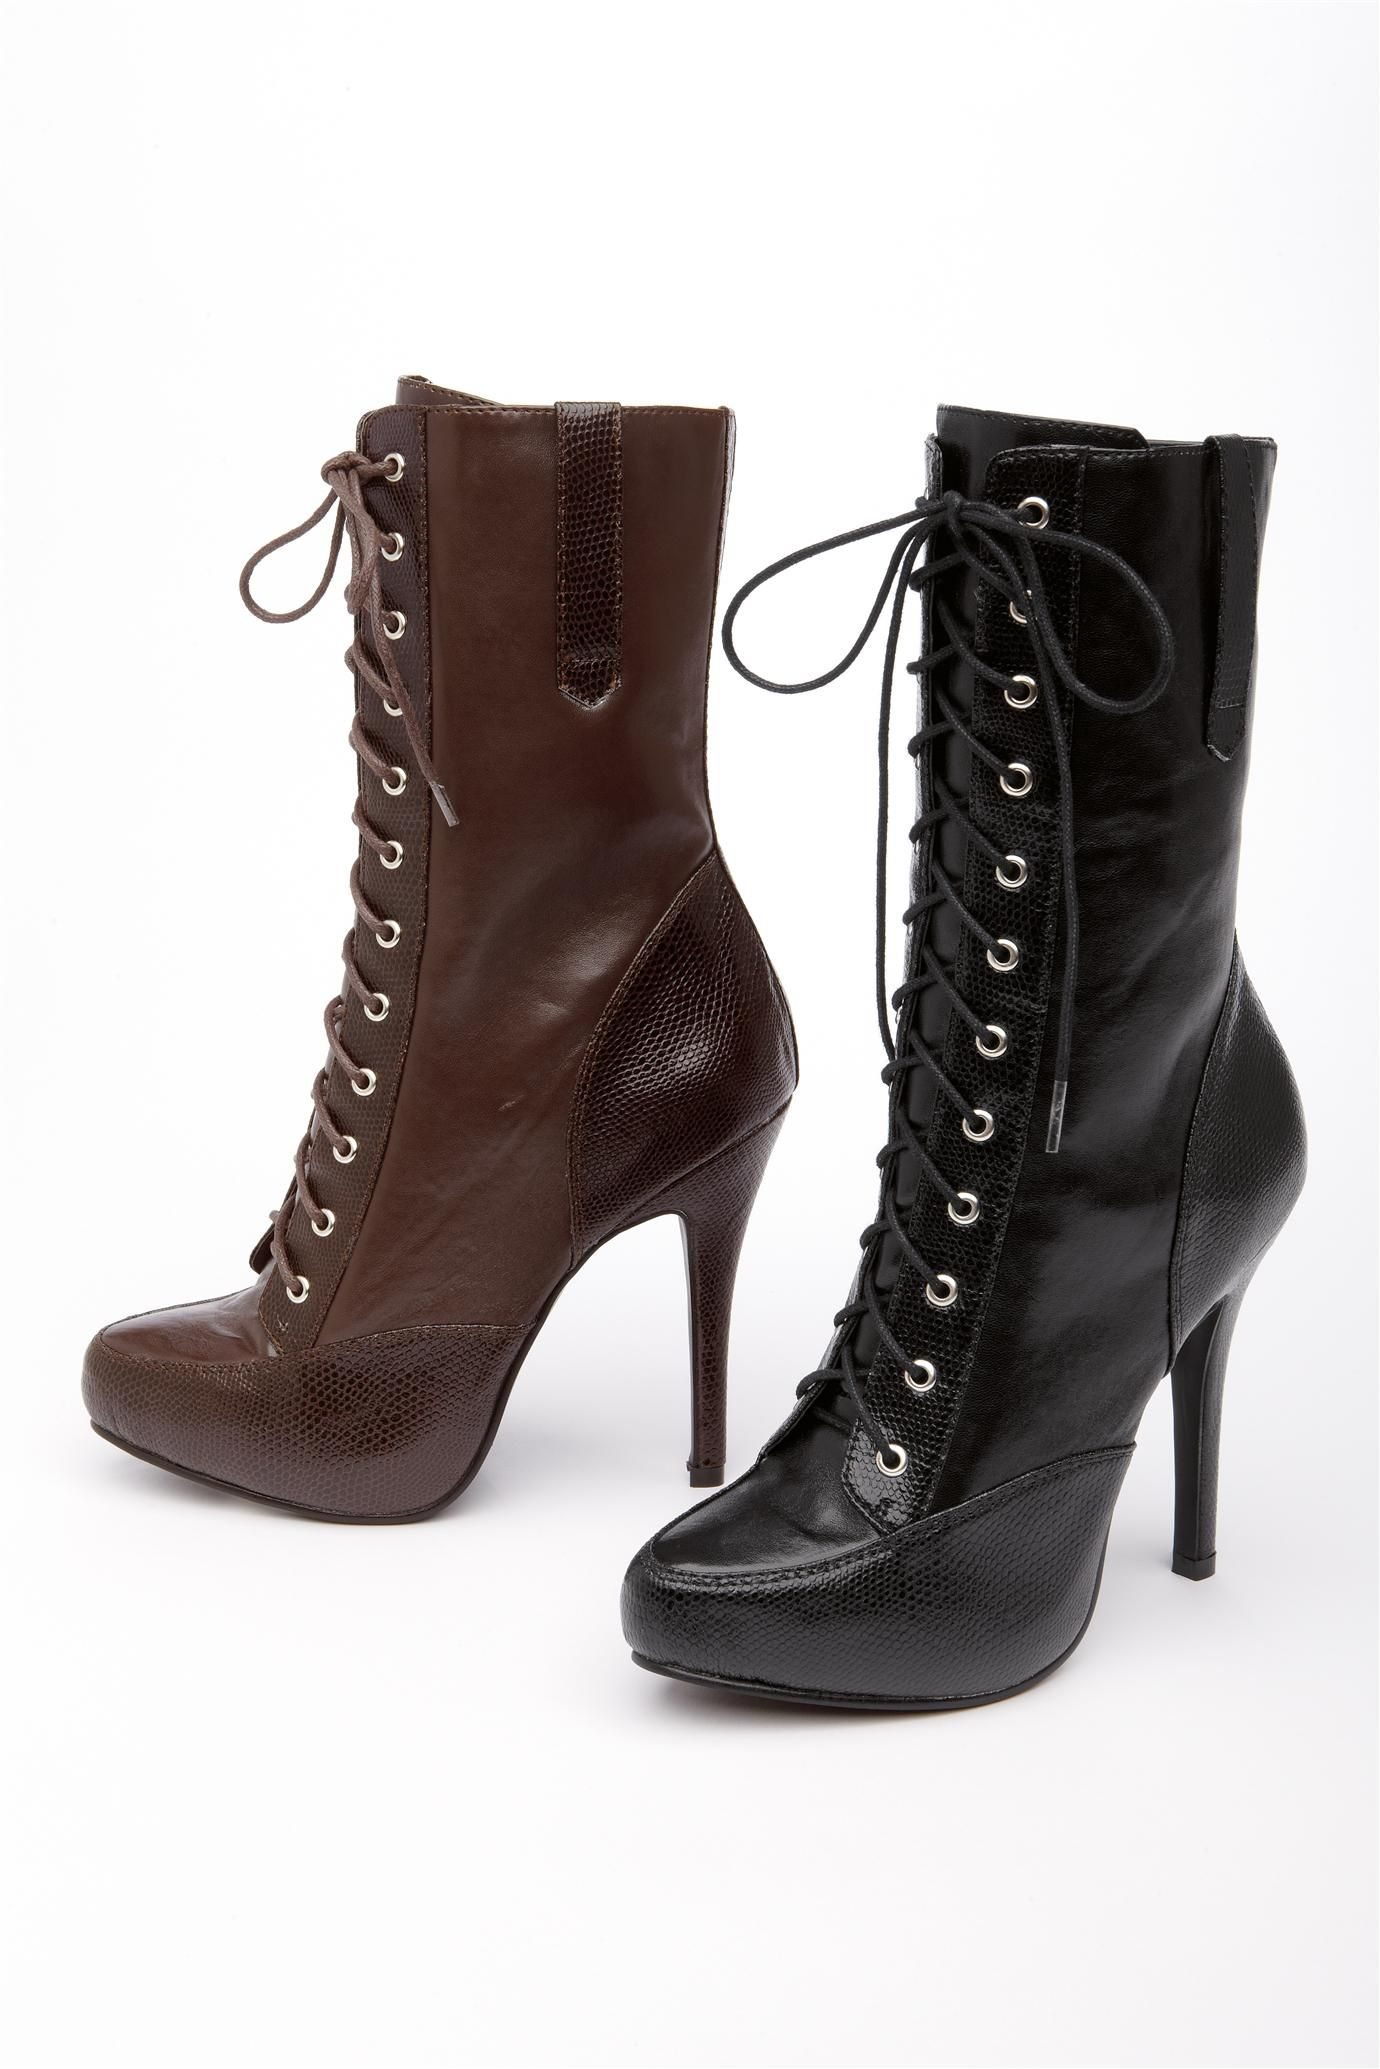 Lace-up High Heel Boot | High heel boots | Pinterest | Sexy, Shoes ...